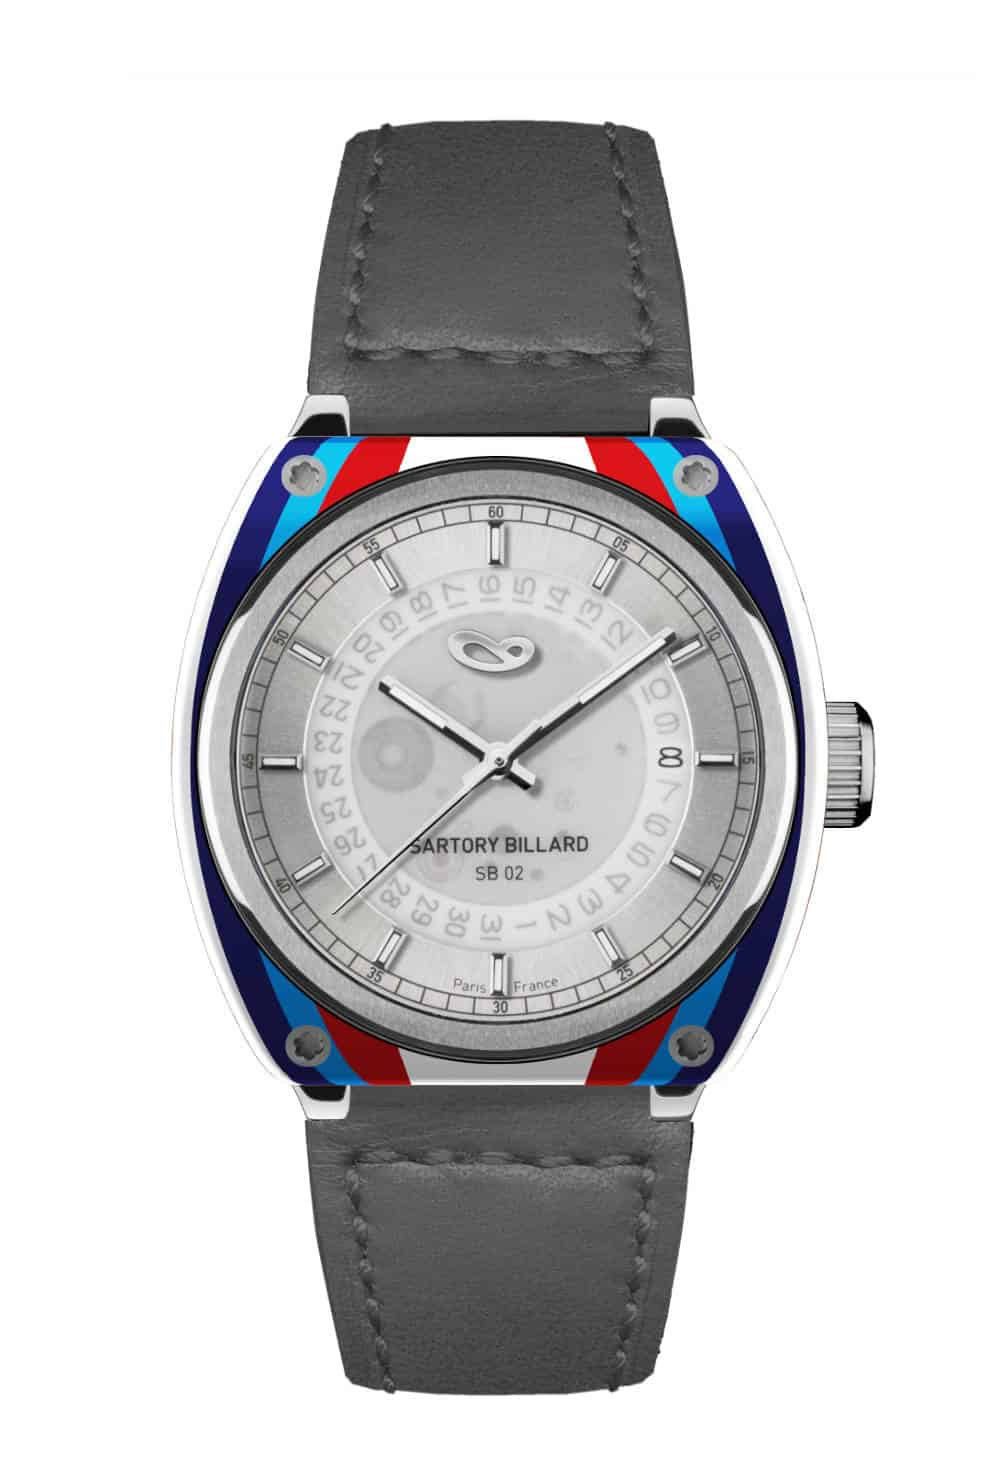 motorsport watch , montre sport auto